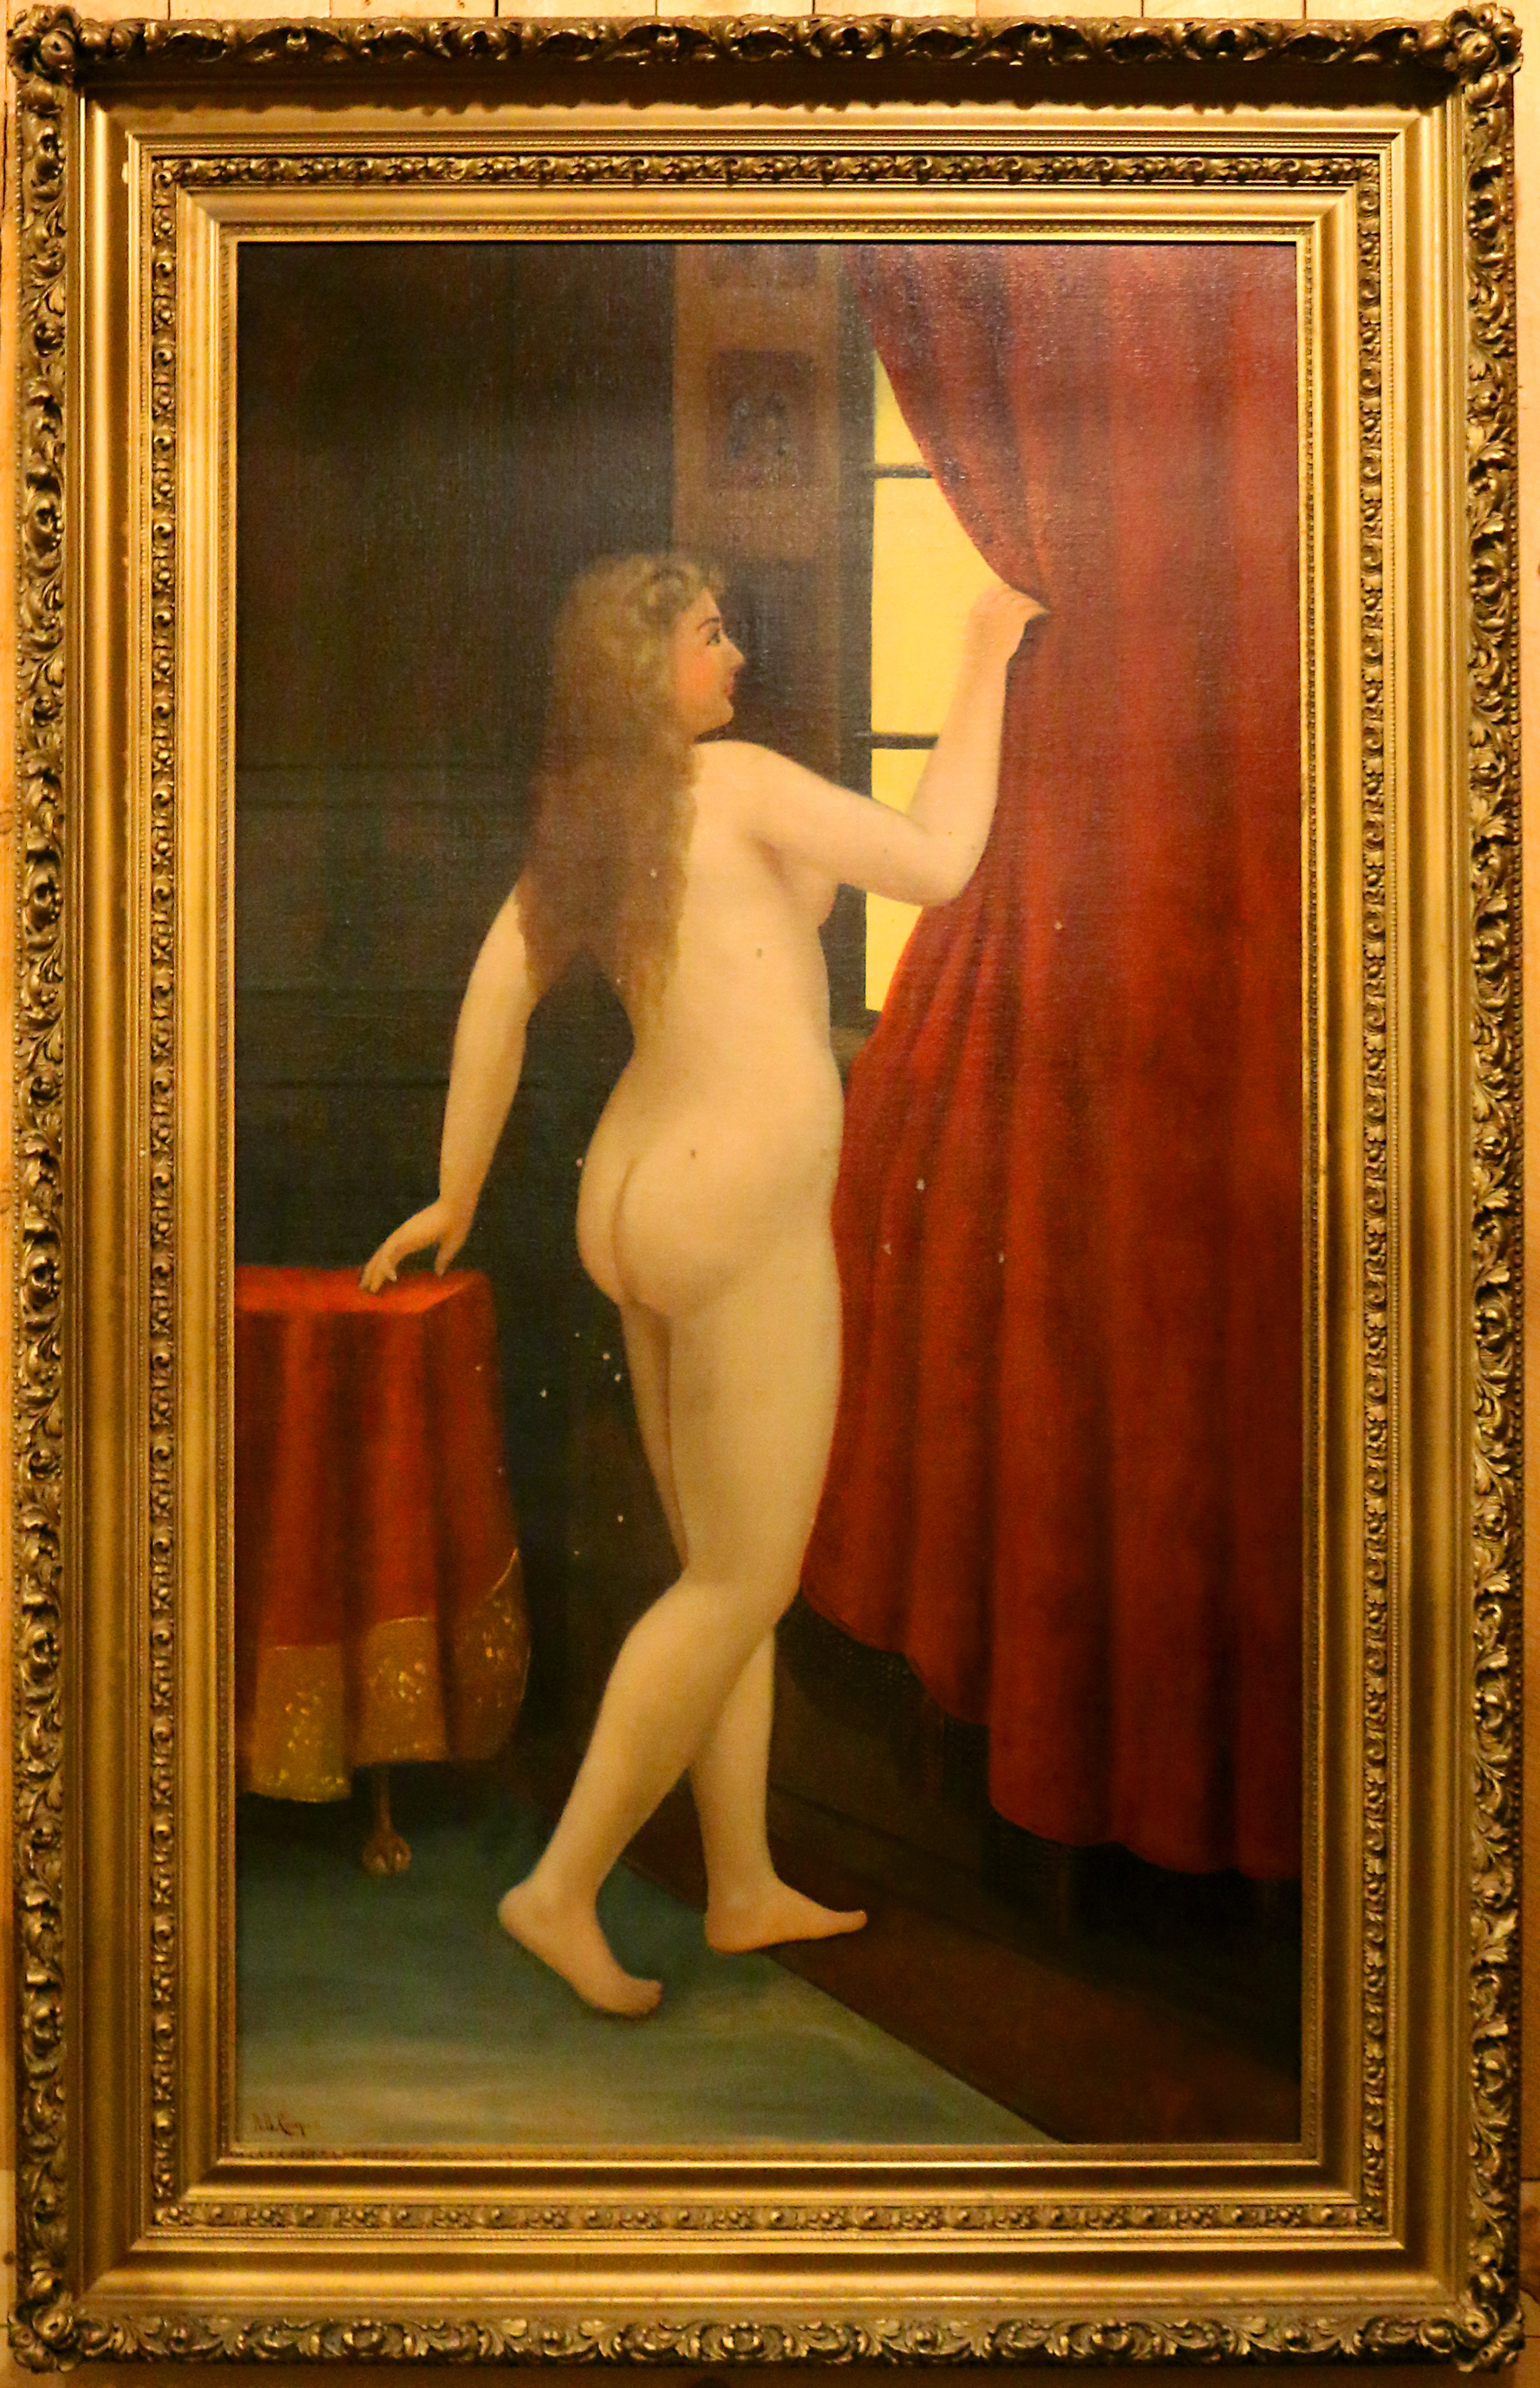 Legend has it that Poker Alice damaged this painting when she fired a shotgun at her Sturgis brothel.